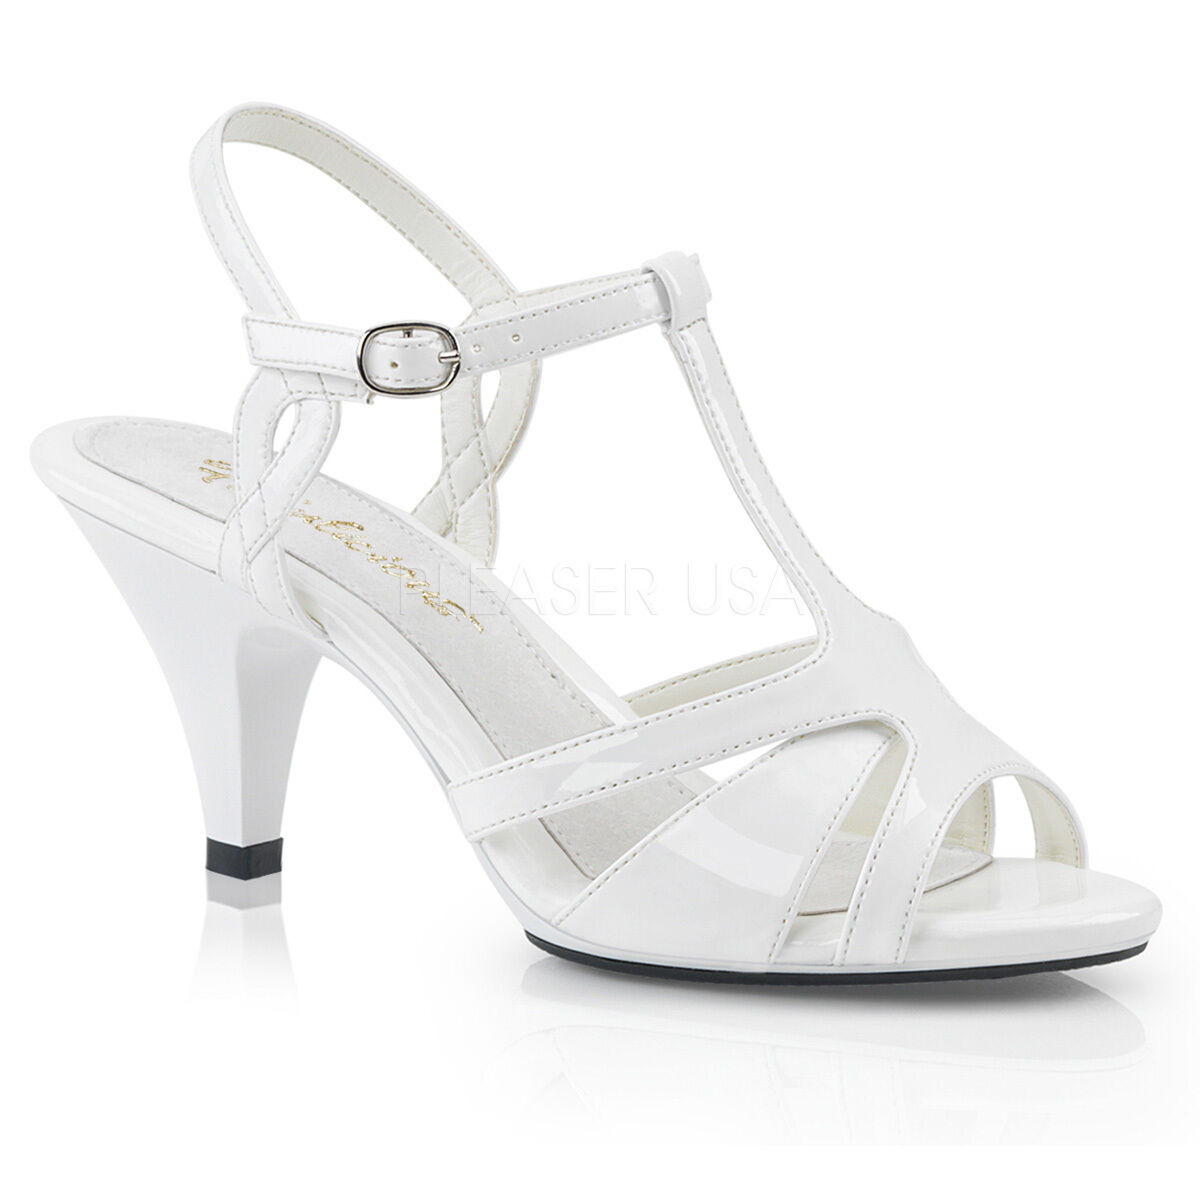 PLEASER Sexy Low 3  Heels T-Strap White Patent Sandals shoes w  Ankle Strap